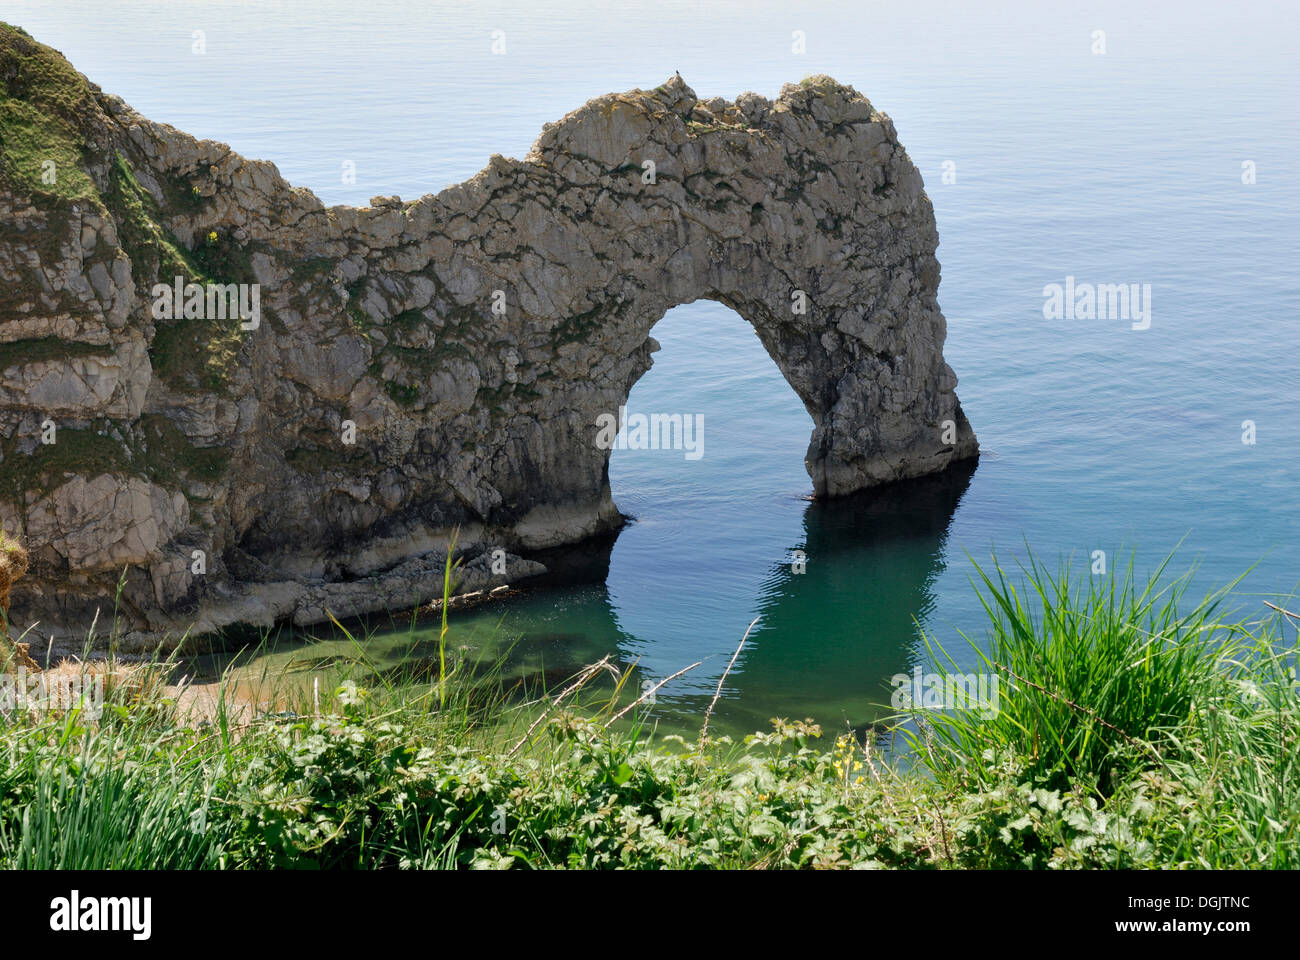 Durdle Door Arch, Lulworth, Dorset, southern England, England, UK, Europe - Stock Image